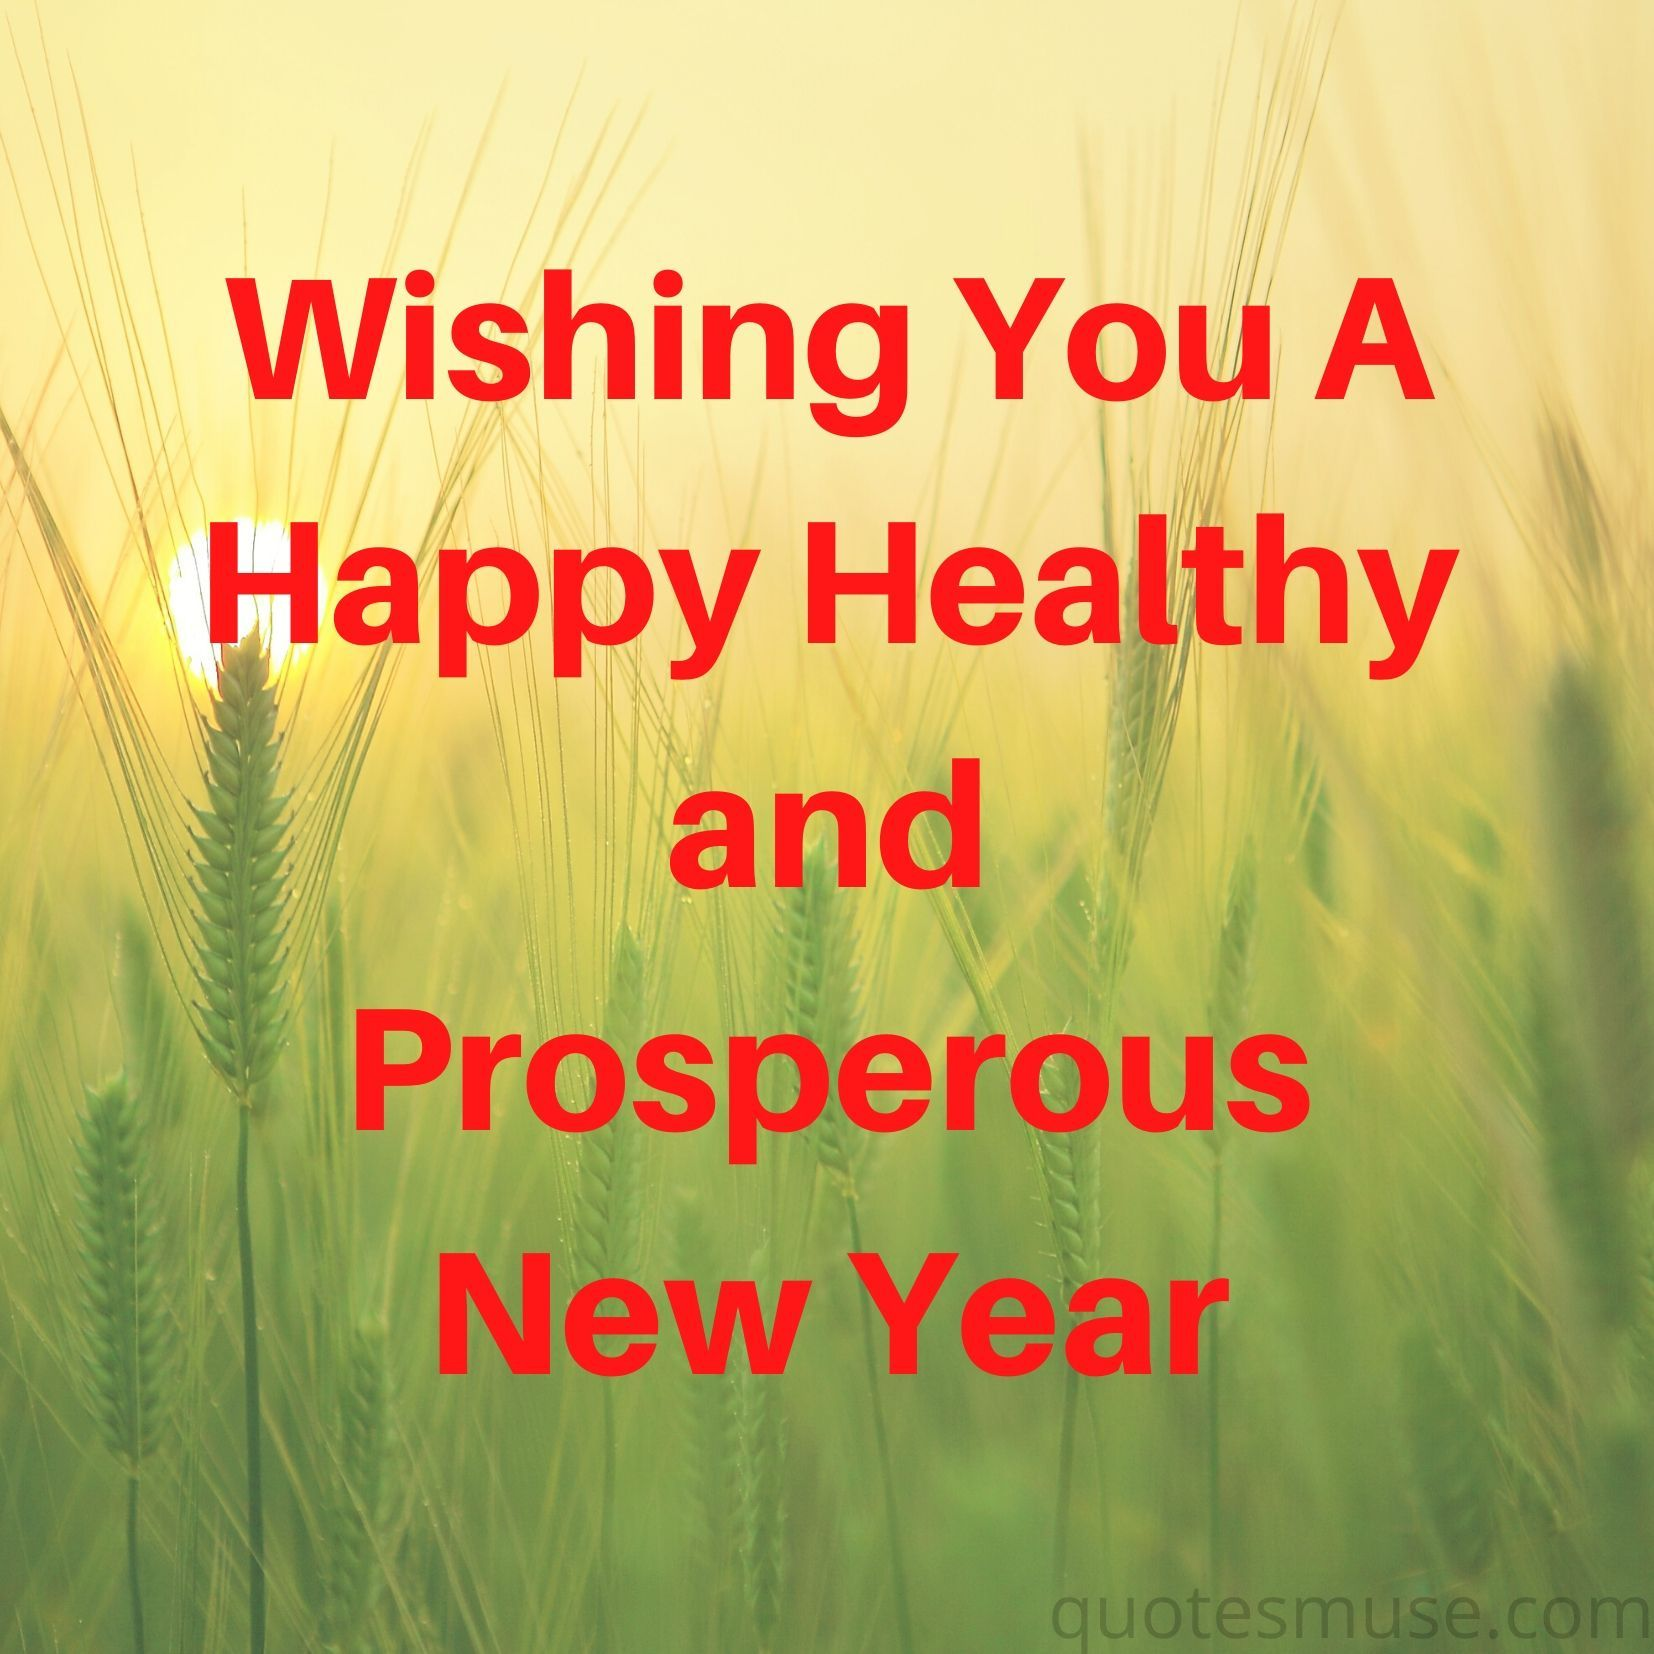 Wishing You A Happy Healthy and Prosperous New Year